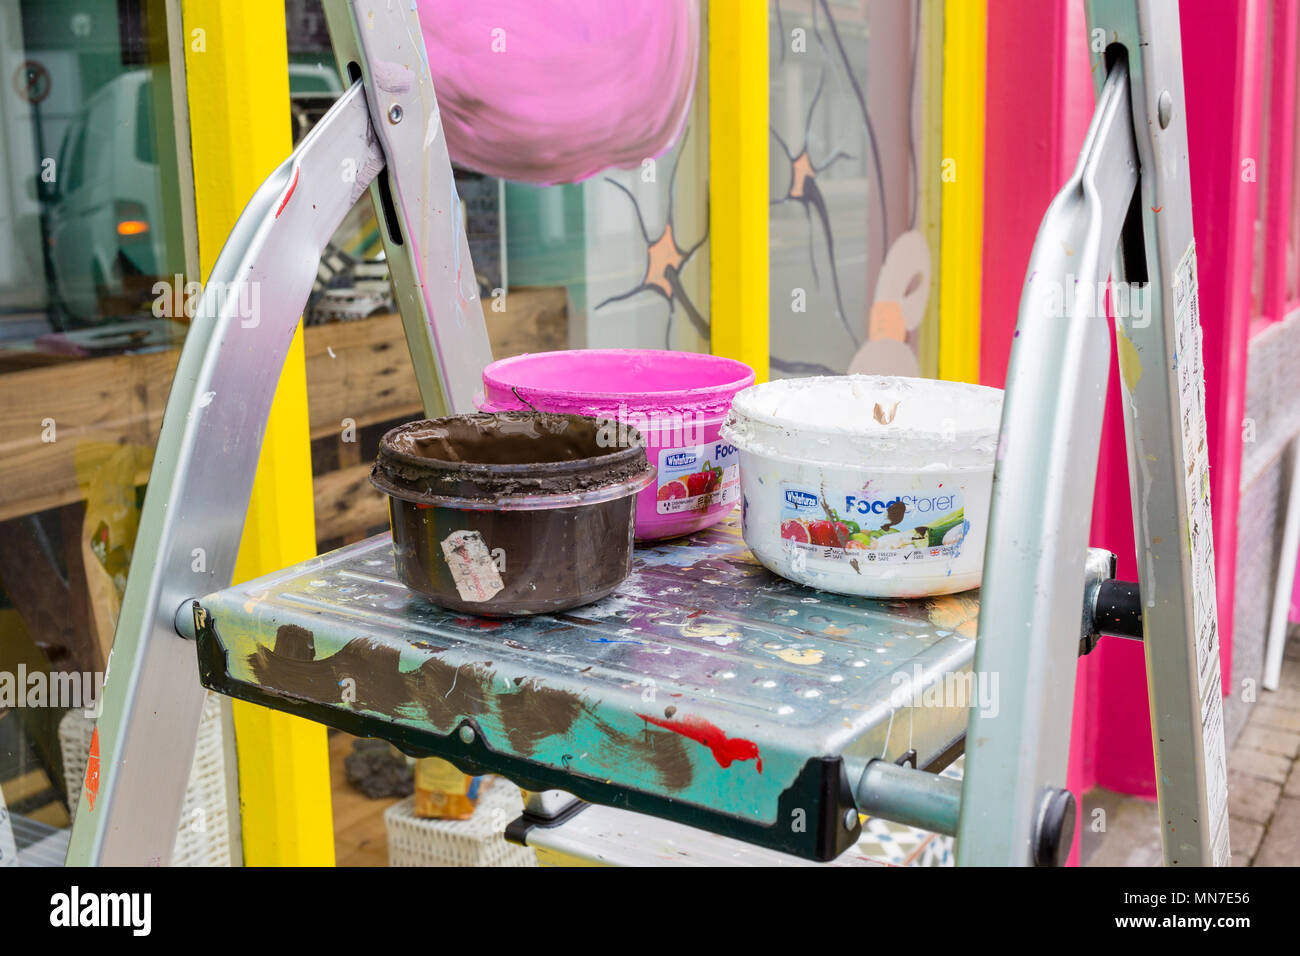 Window paints in pots on step ladder - Stock Image